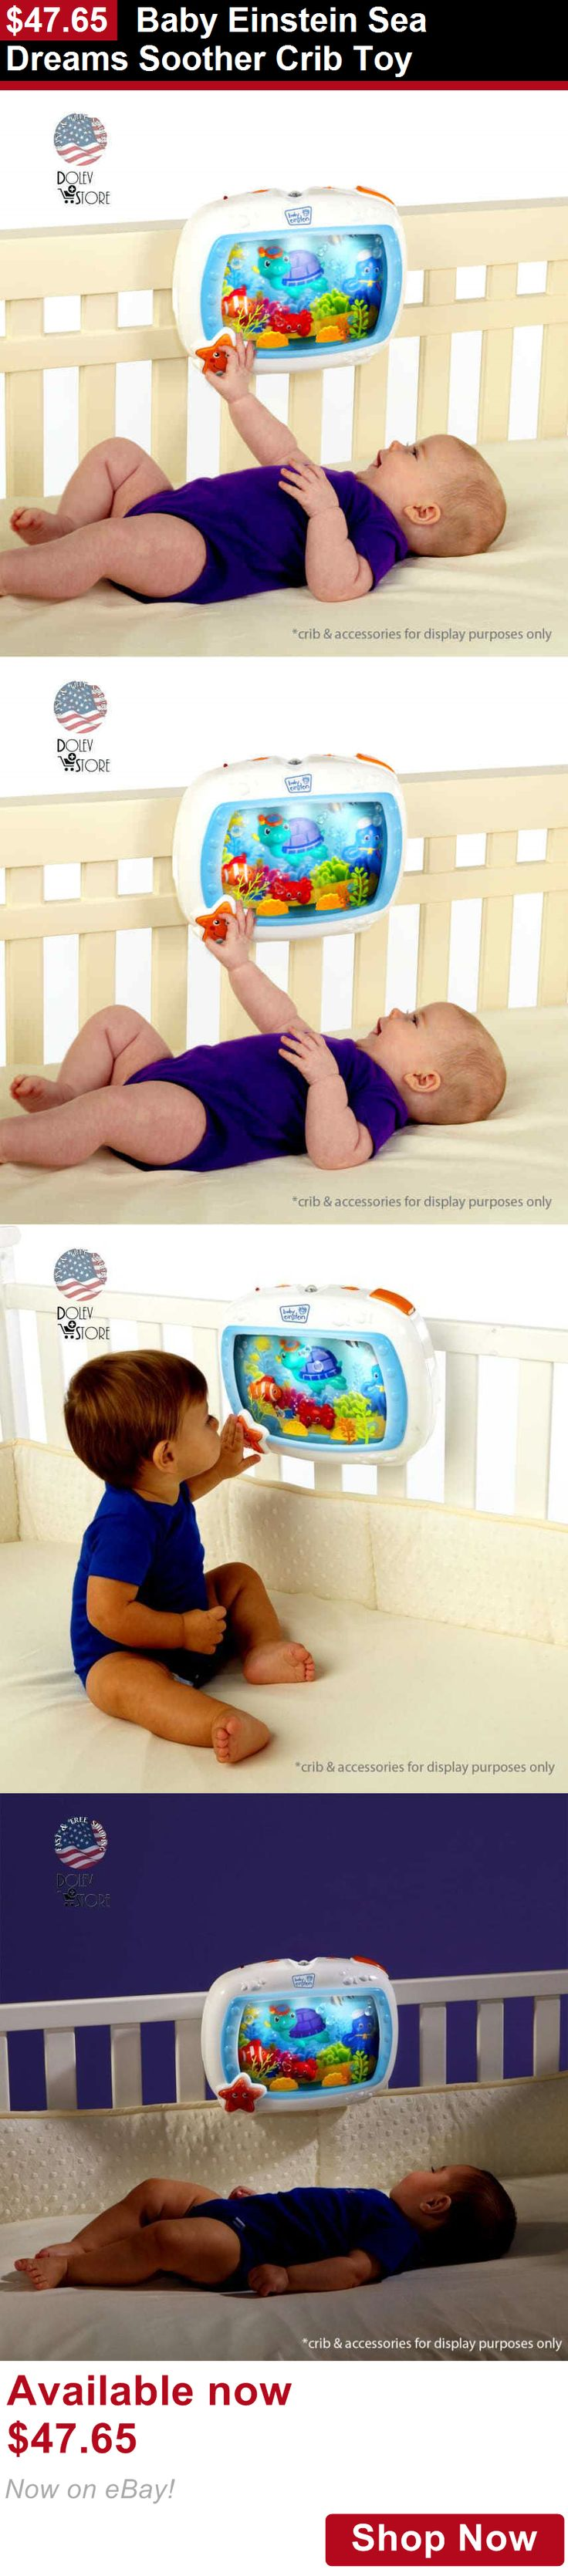 Crib Toys: Baby Einstein Sea Dreams Soother Crib Toy BUY IT NOW ONLY: $47.65